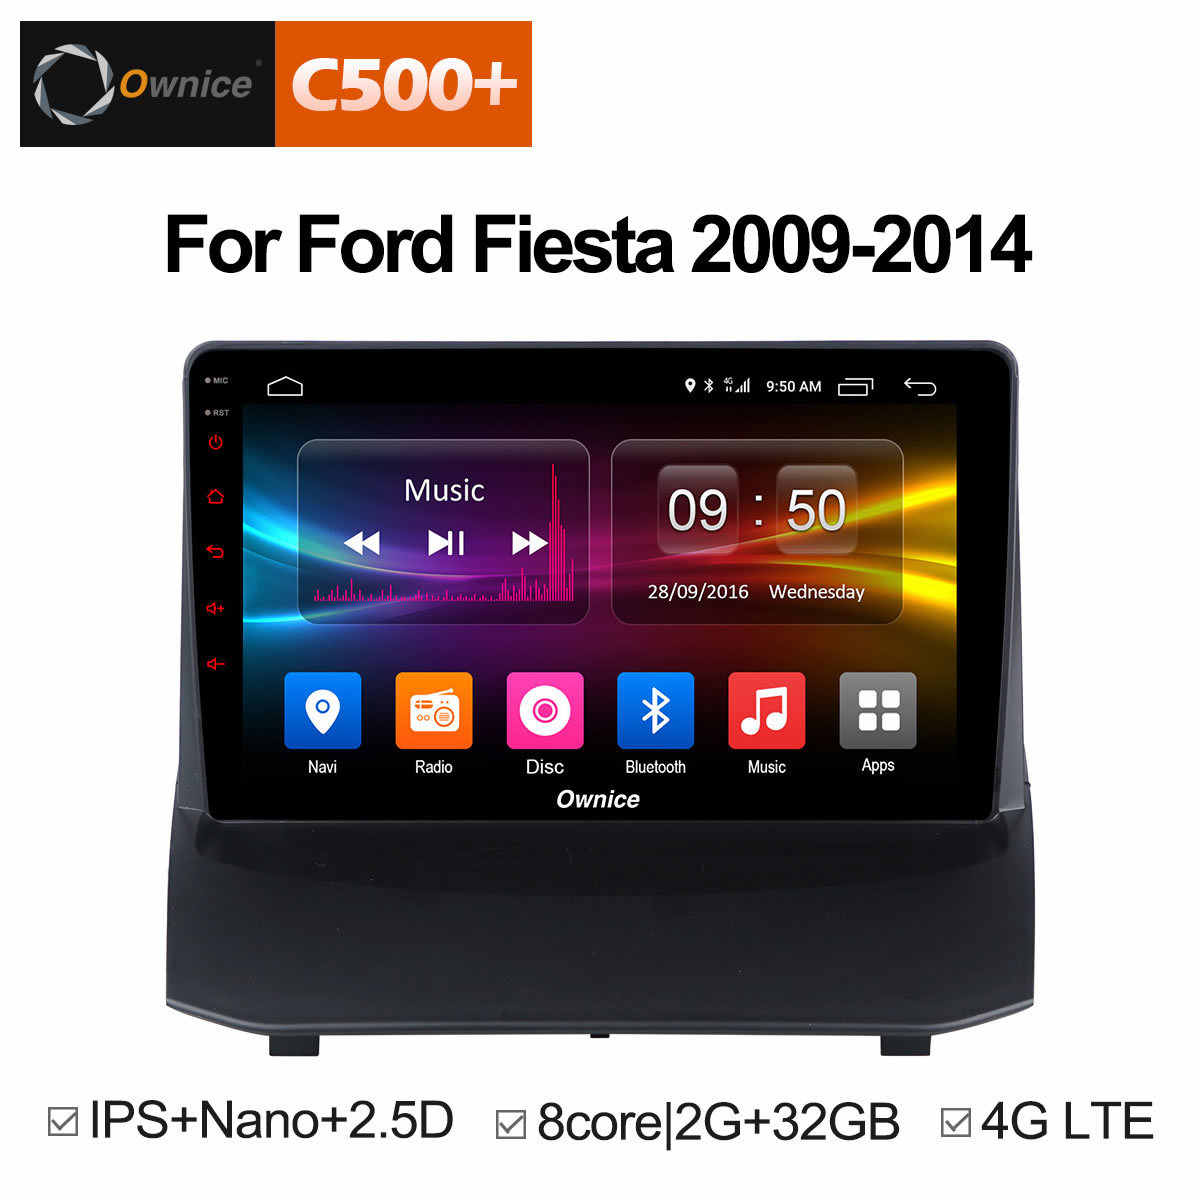 Ownice C500 + G10 Android 8.1 autoradio stereo voor Ford Fiesta 2009-2015 Octa core auto dvd GPS speler met 2G RAM, 32G ROM Audio